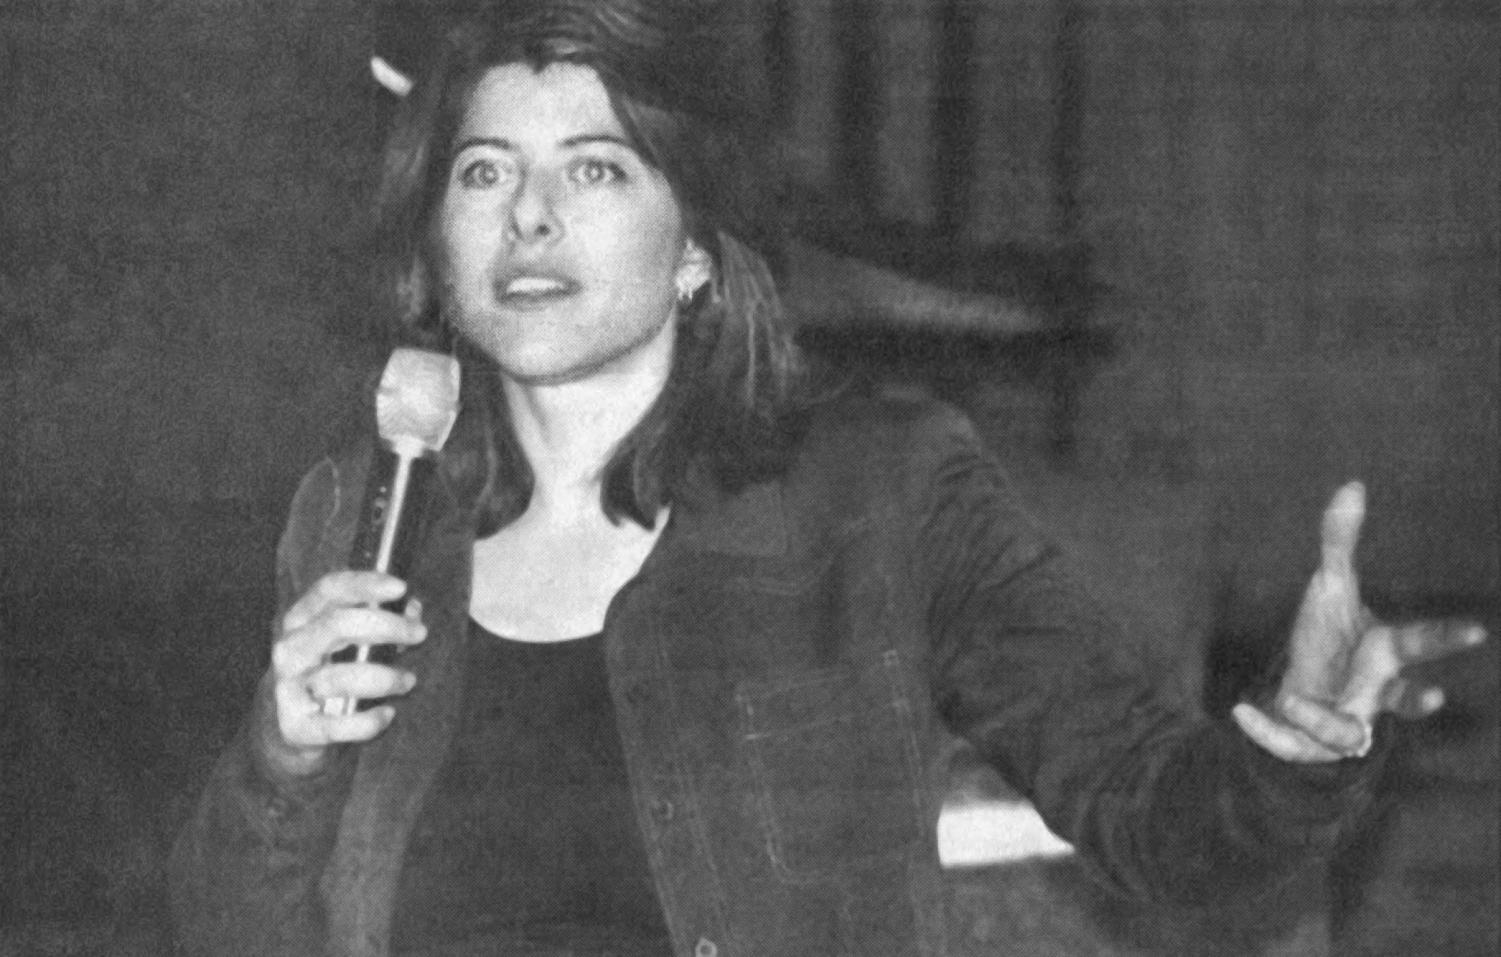 Author Naomi Wolf spoke at Meadow Brook Theatre for Women's History Month in March 2002.